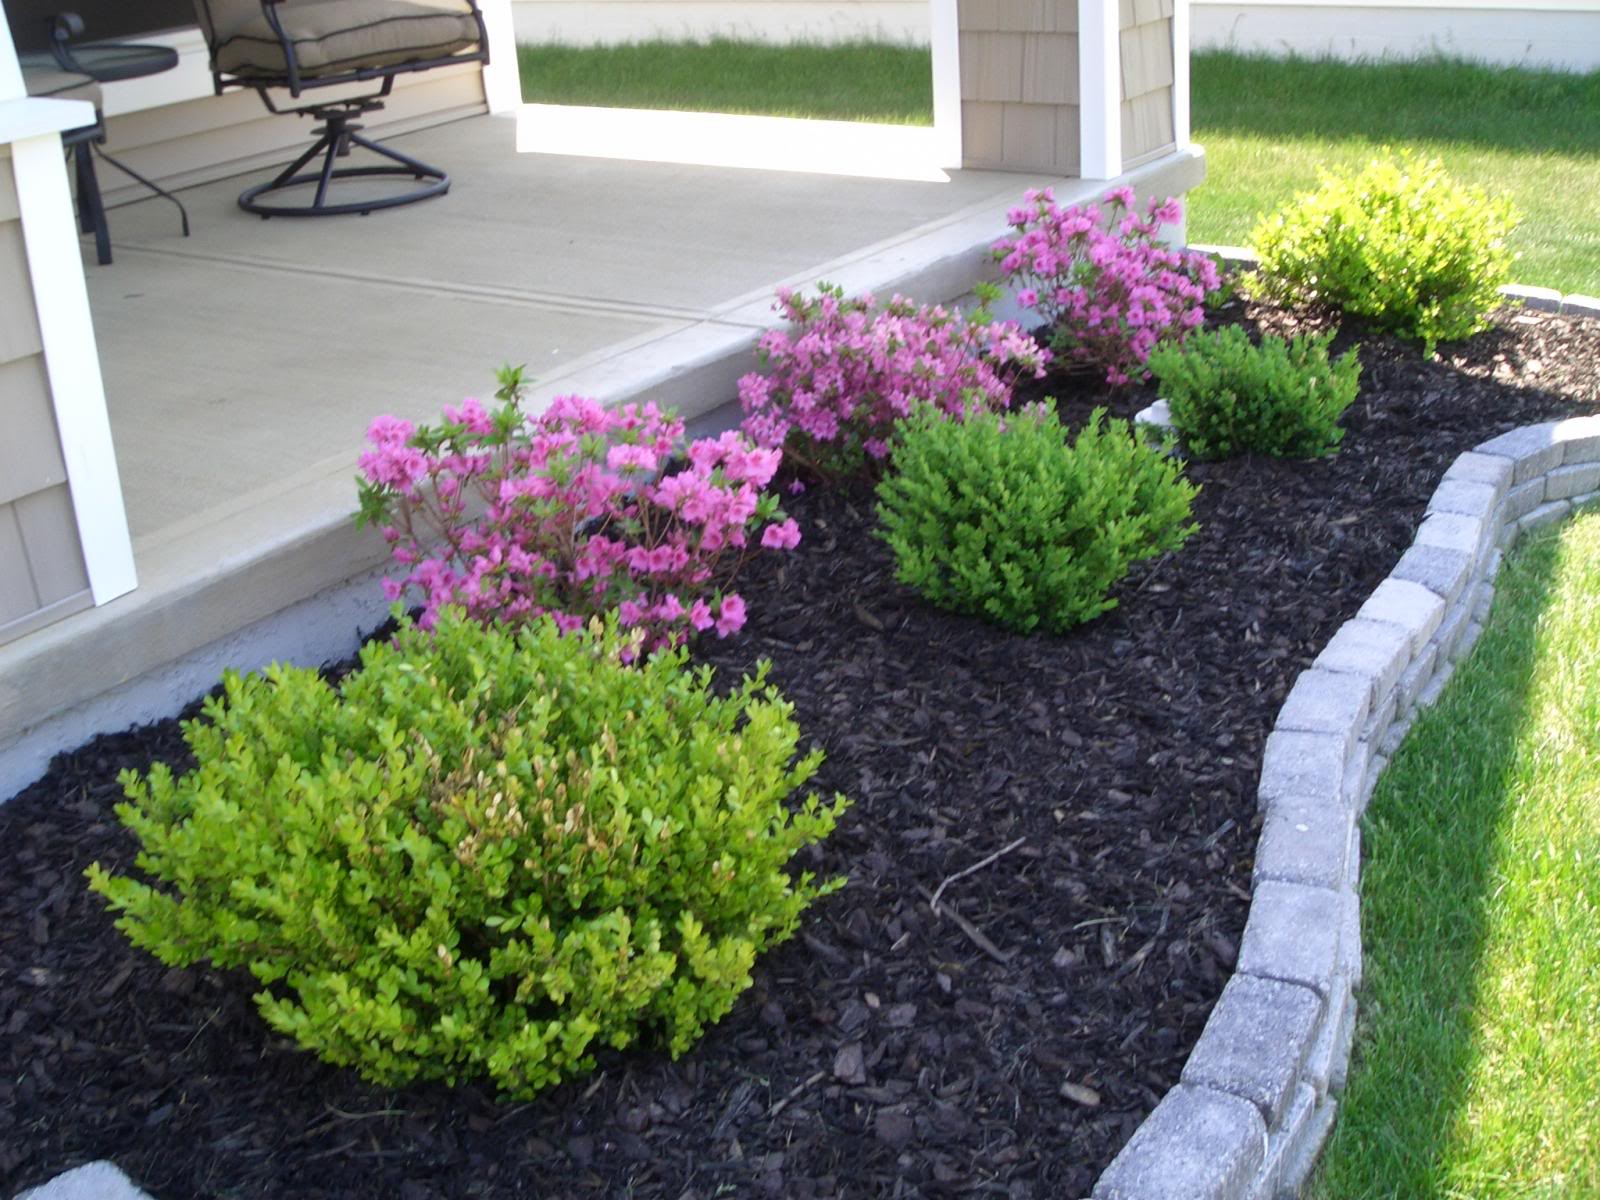 Landscaping landscape plant ideas for Flower garden ideas on a budget